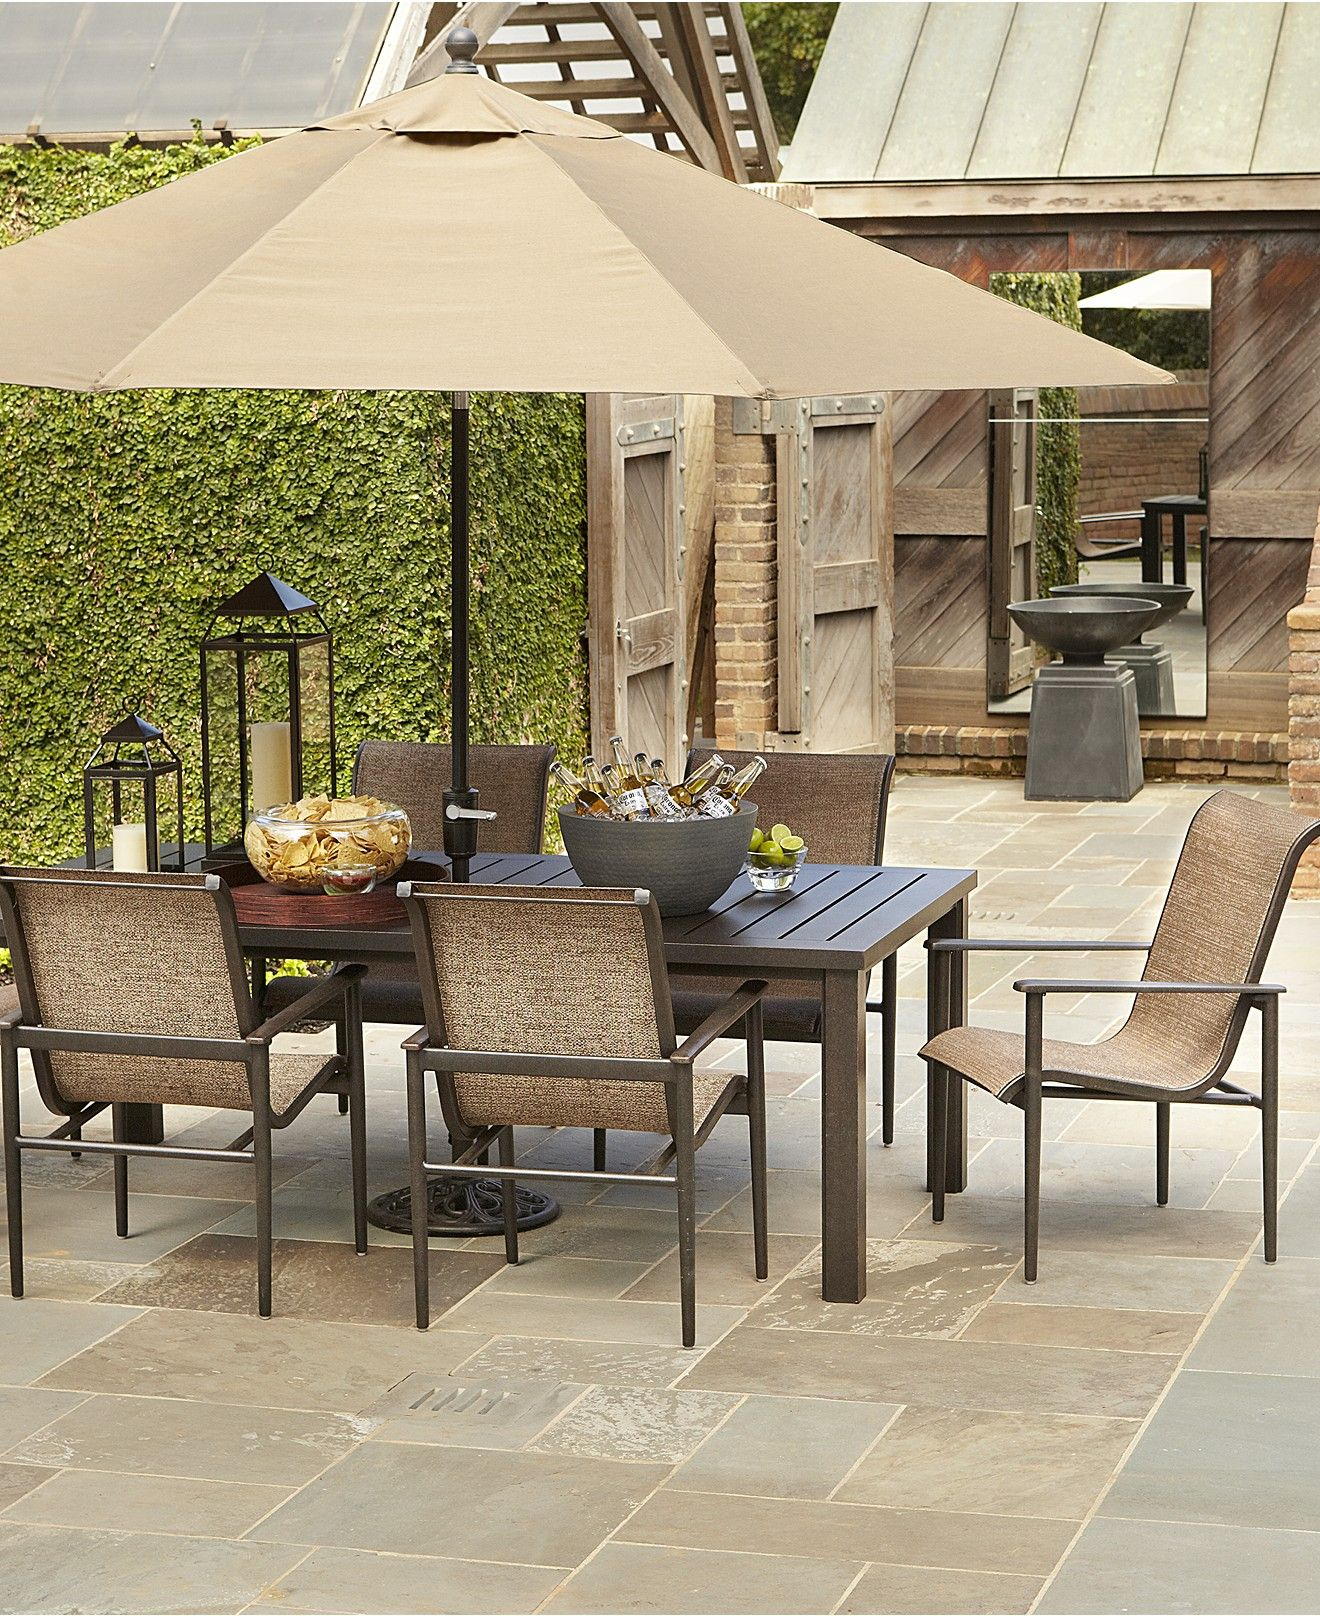 Badgley Outdoor Patio Furniture Dining Sets & Pieces ... on Living Spaces Patio Set id=54671